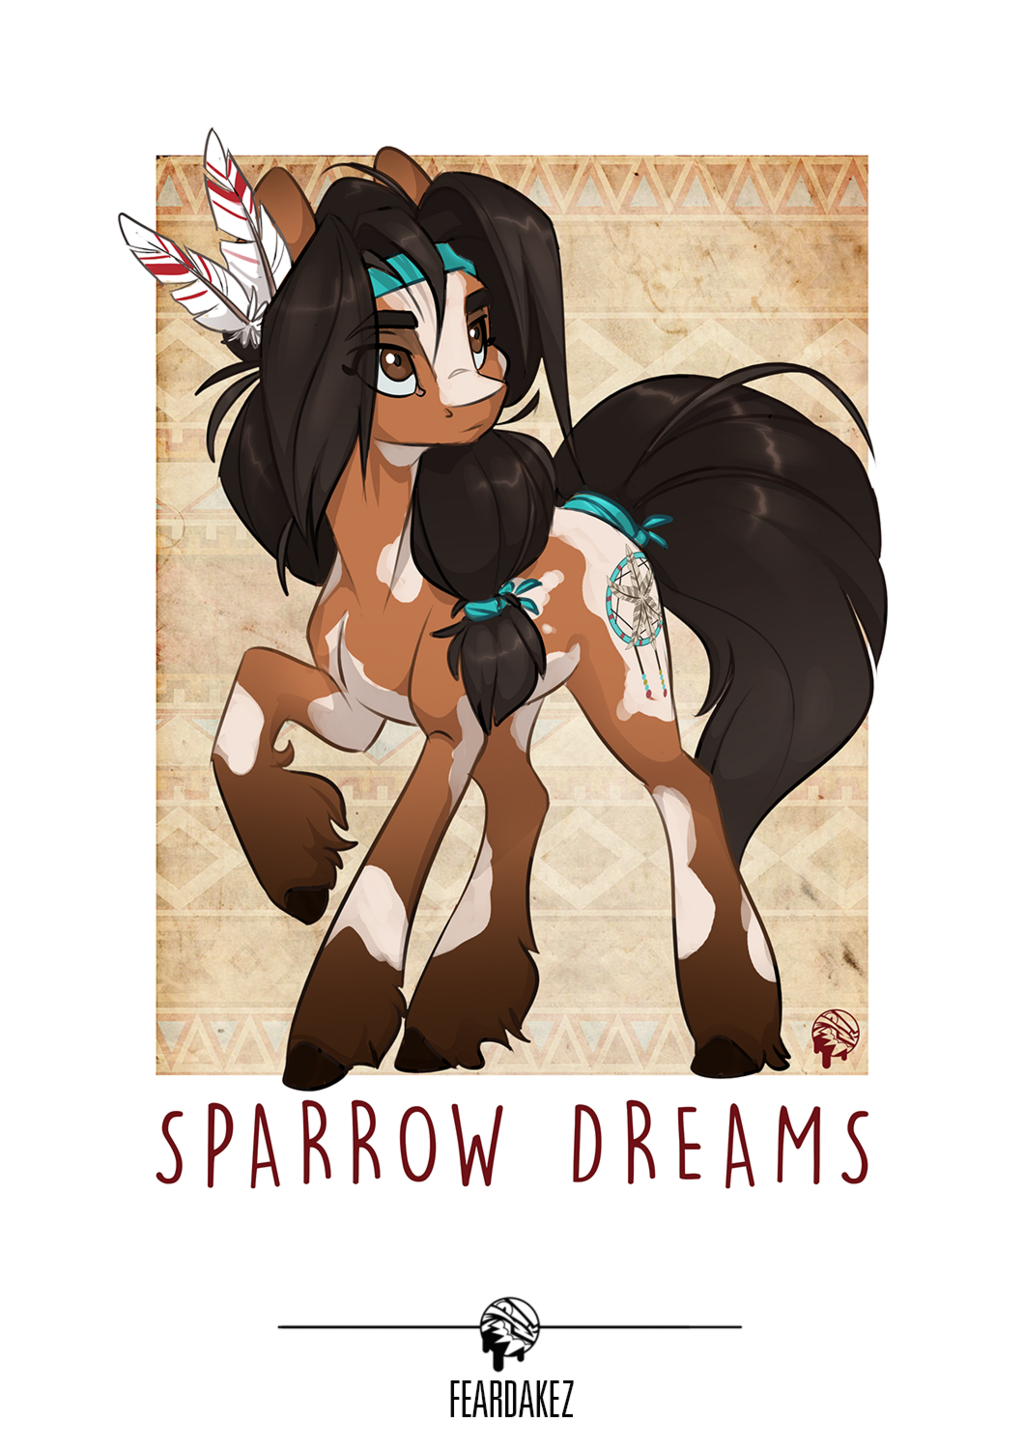 COMMISSION | Sparrow Dreams | FEARDAKEZ